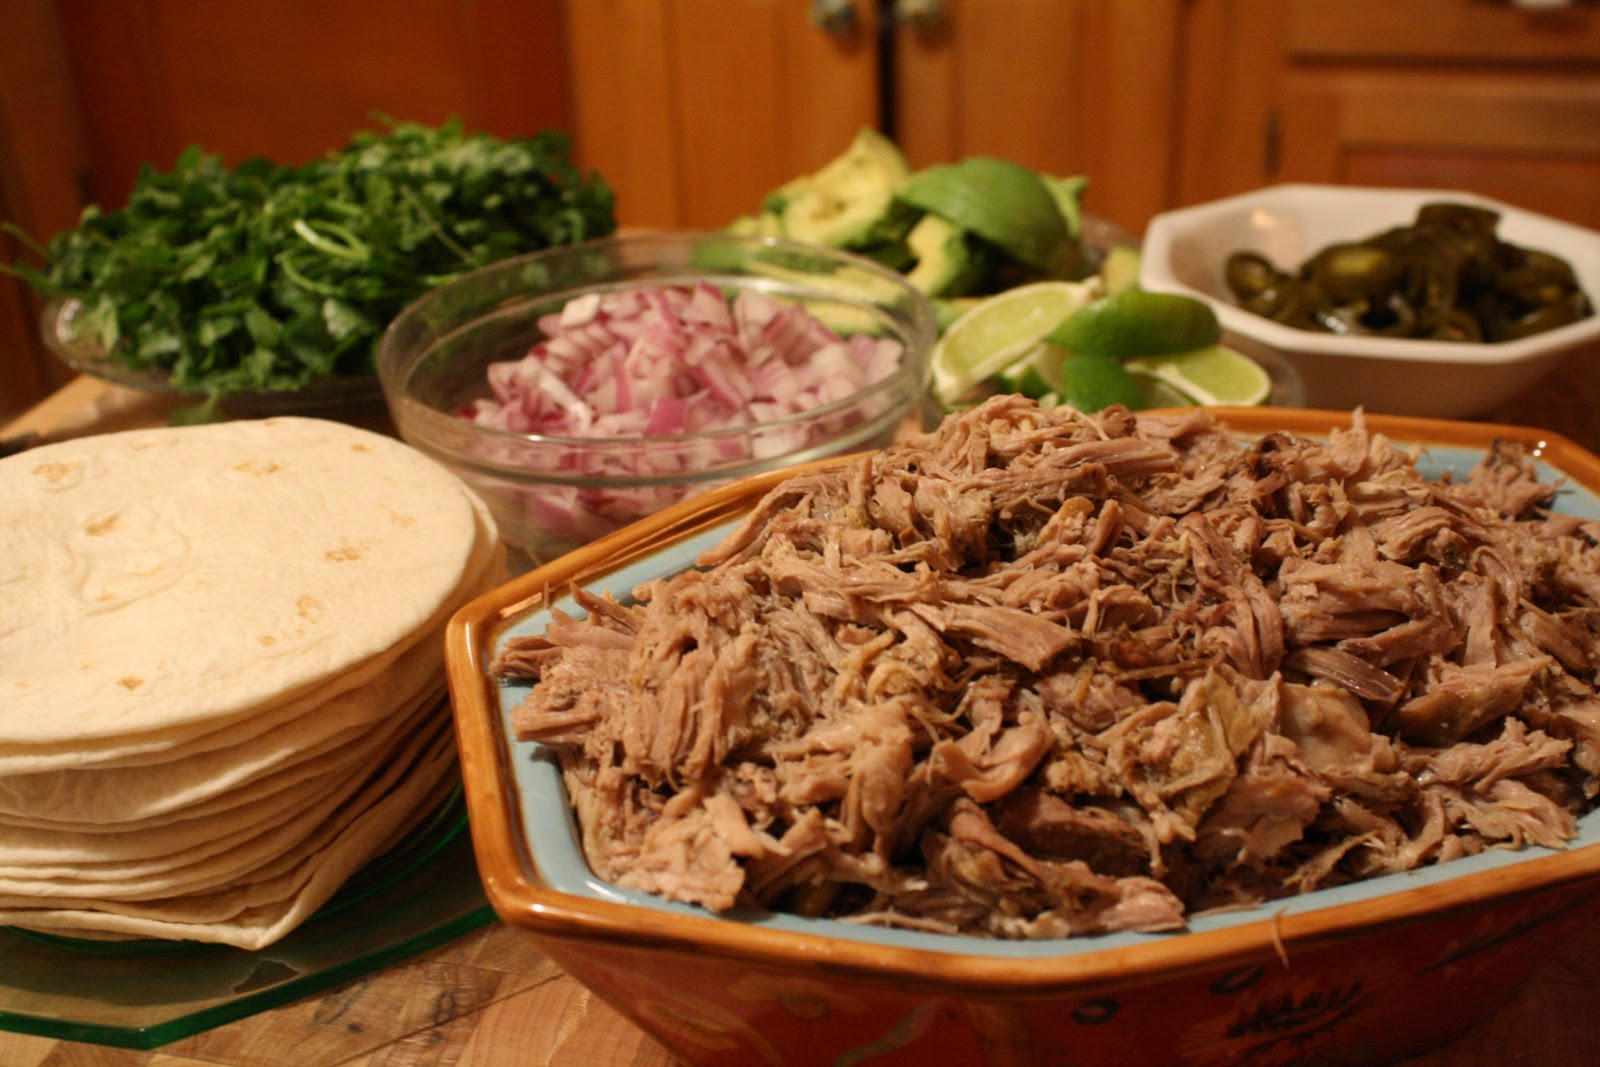 The Food Gospel According to Ruth: Homesick Texan Carnitas